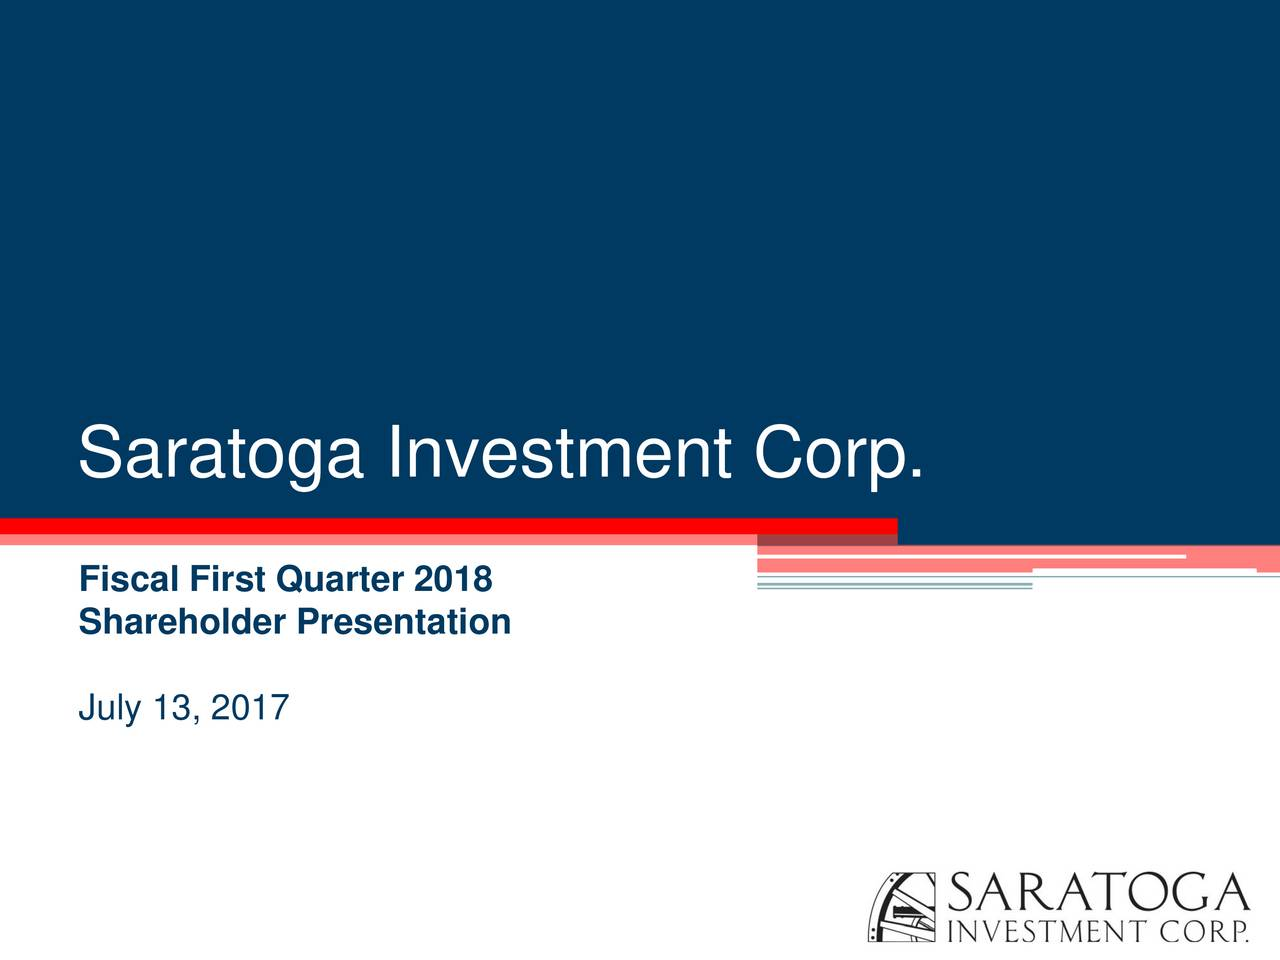 Saratoga Investment Corp 2018 Q1 - Results - Earnings Call